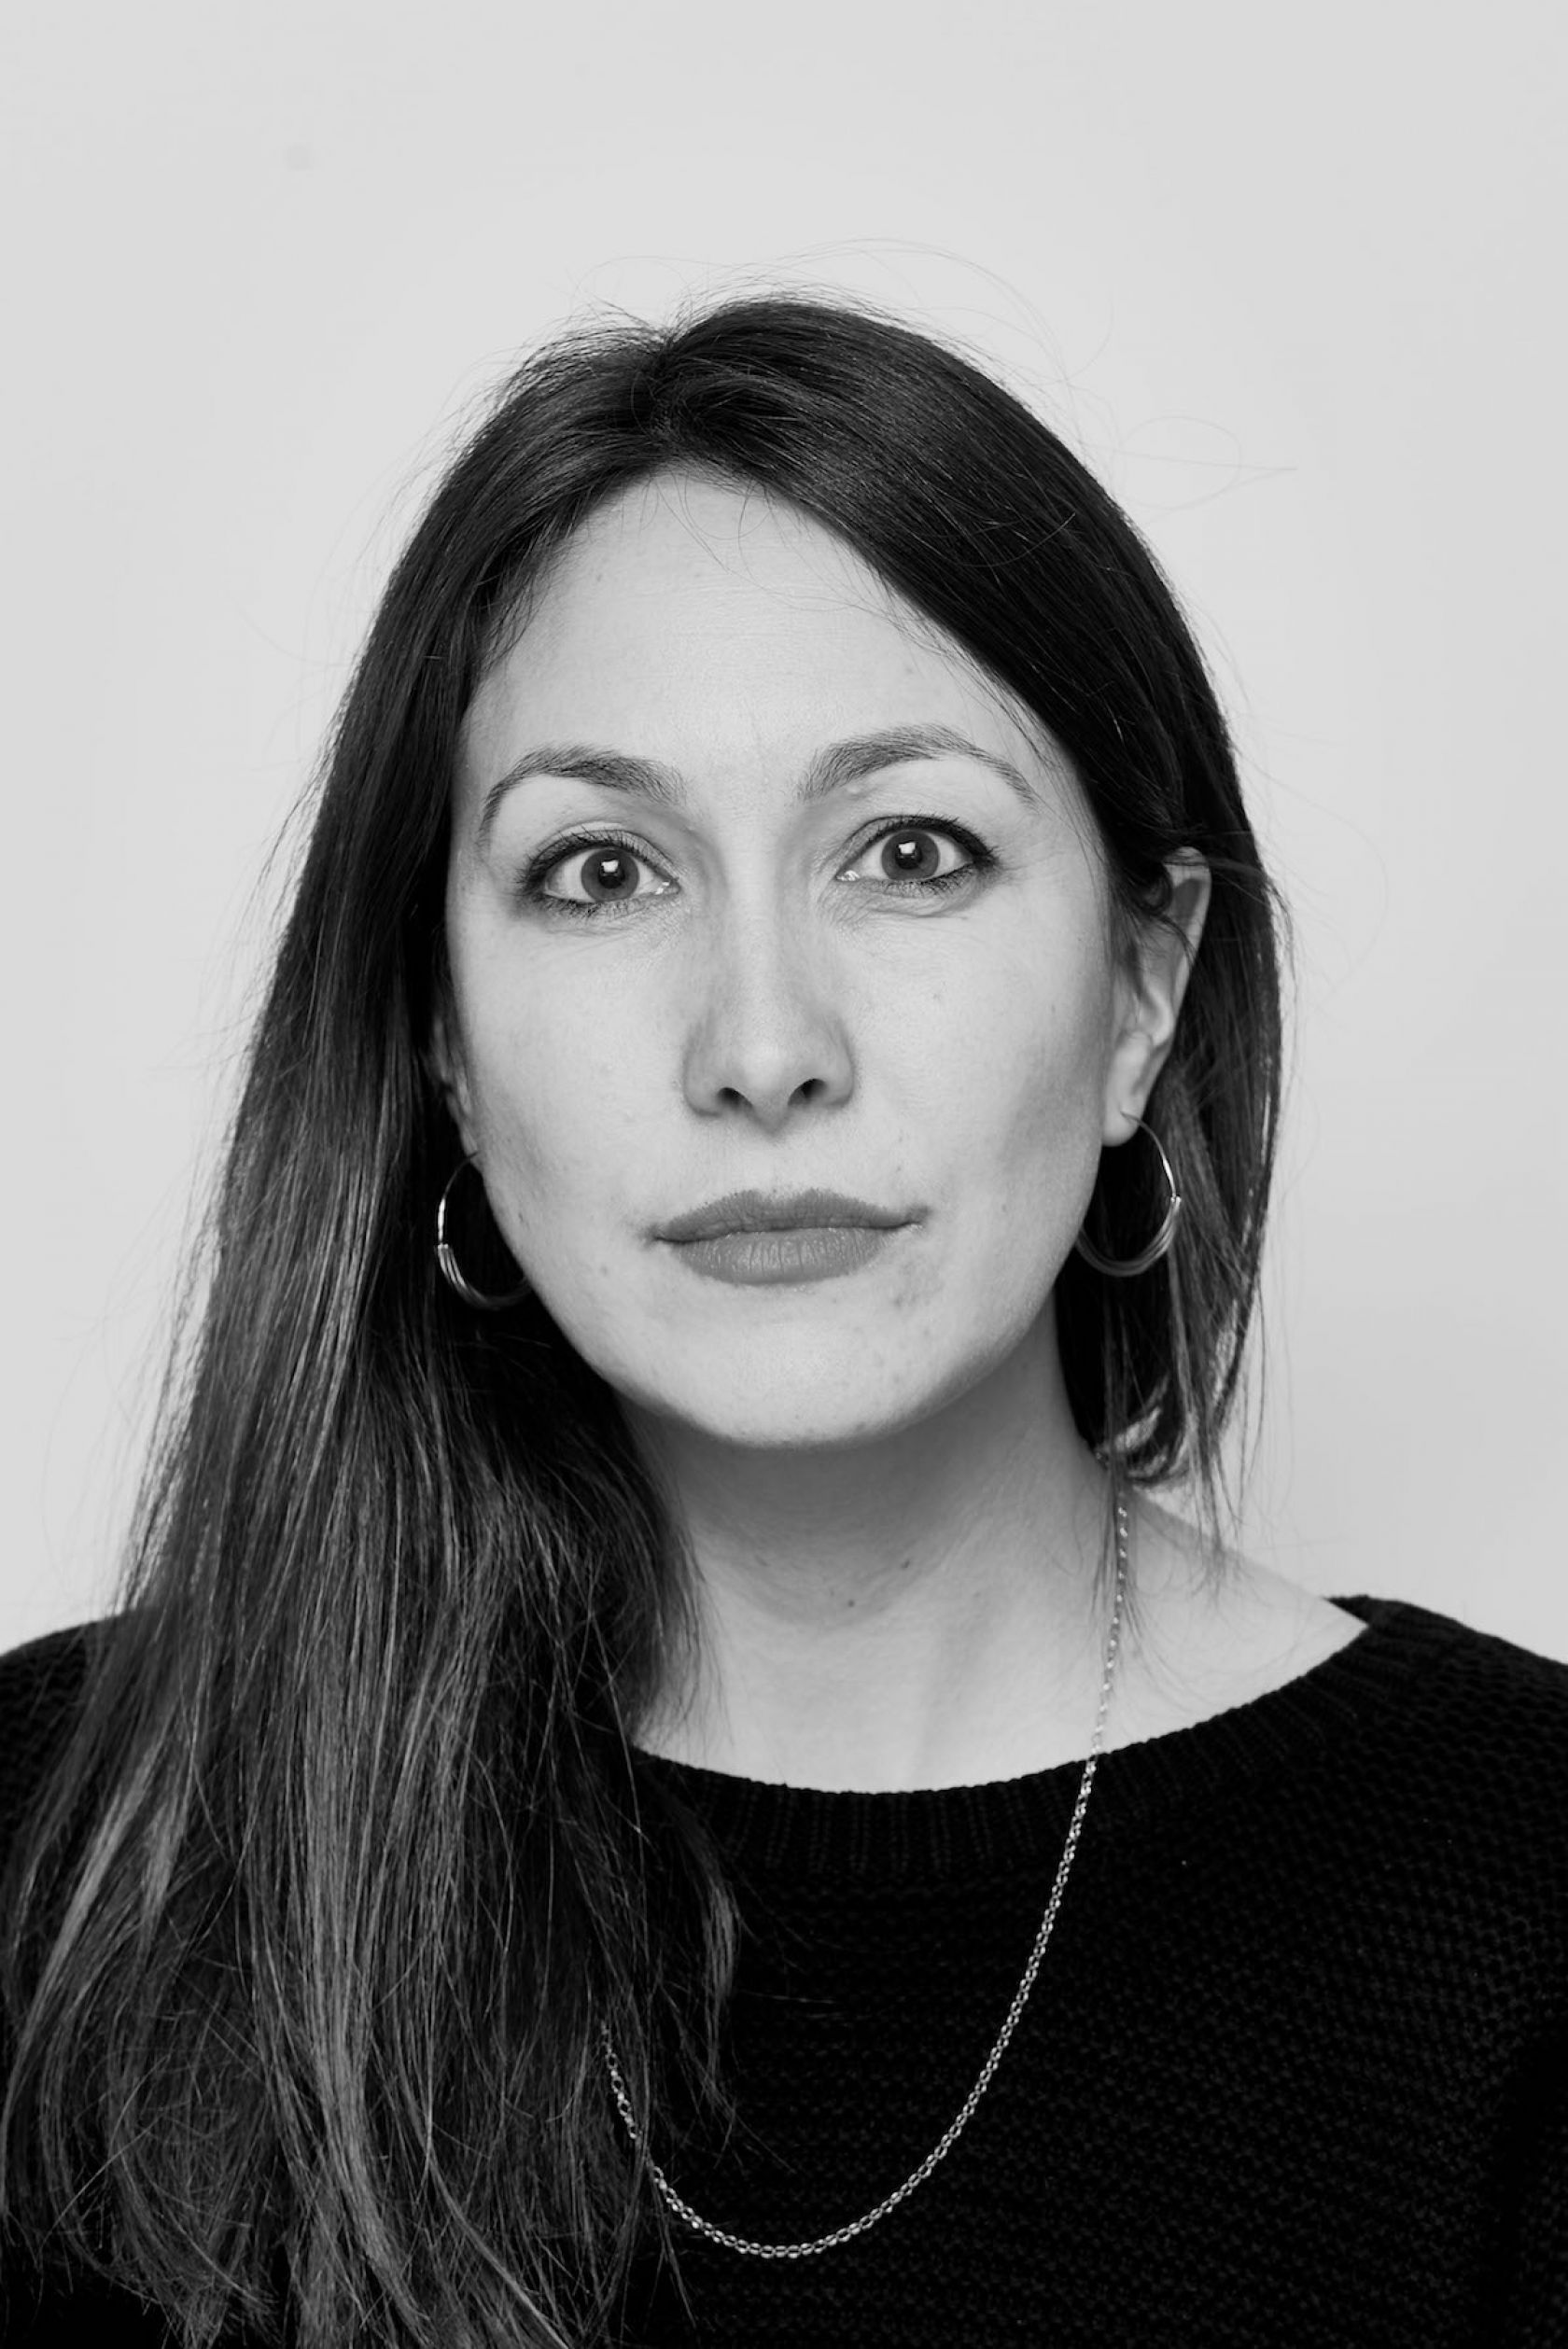 Mother Design managing director KathrynJubrail on post-pandemic design trends, 'kitchen table' agency culture and more